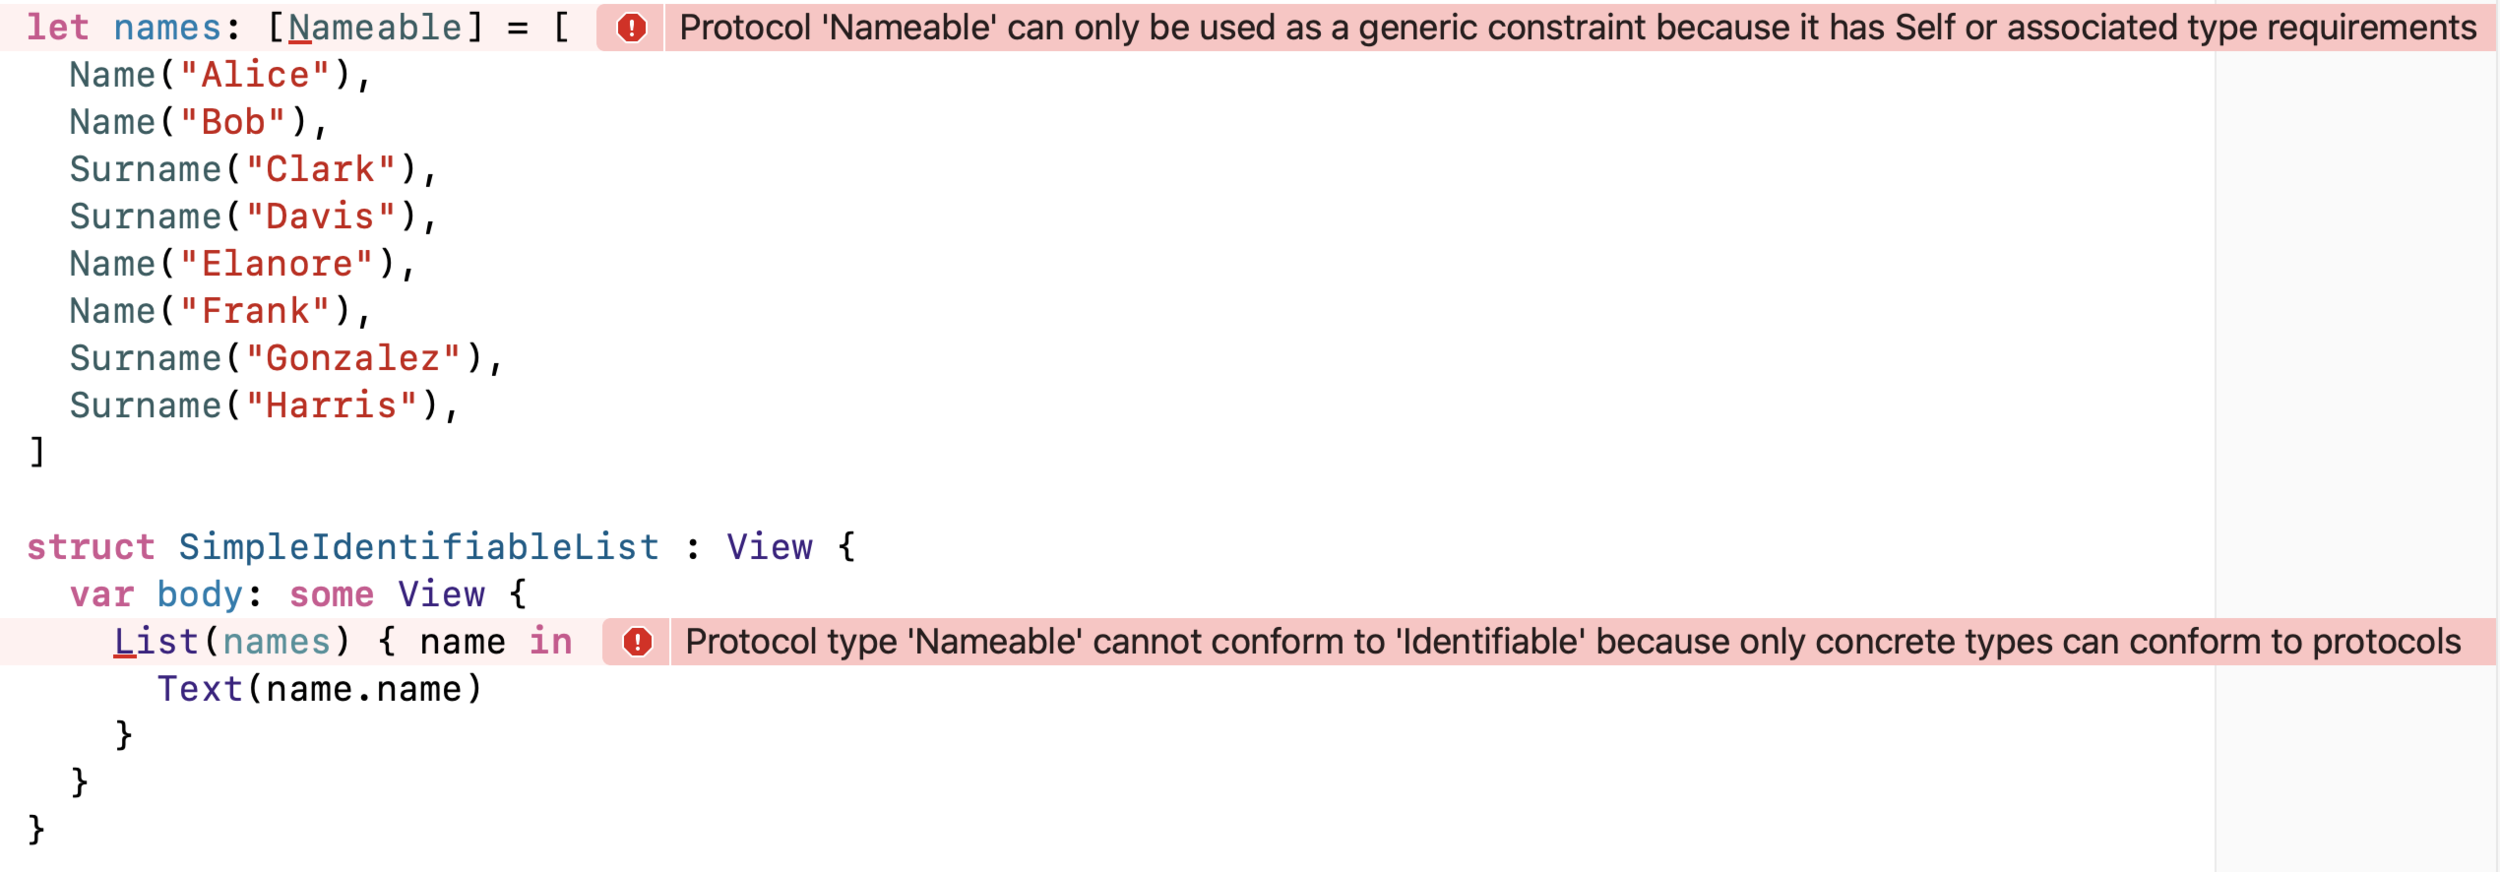 Here we can see that we have two compiler warnings complaining about the same issue in different ways